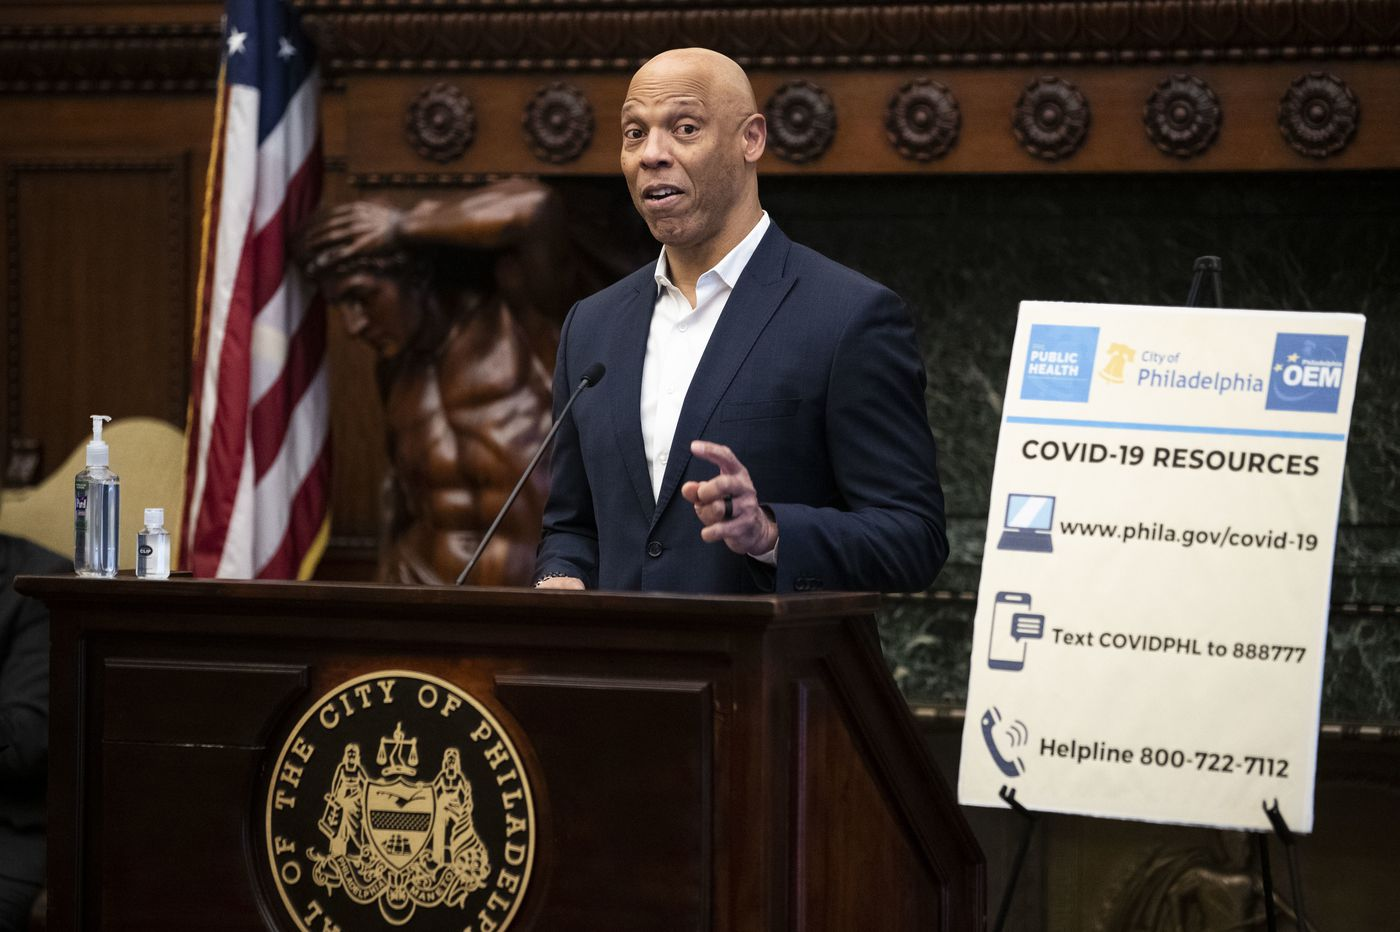 Philly promises public school students will have internet access as coronavirus keeps classes online